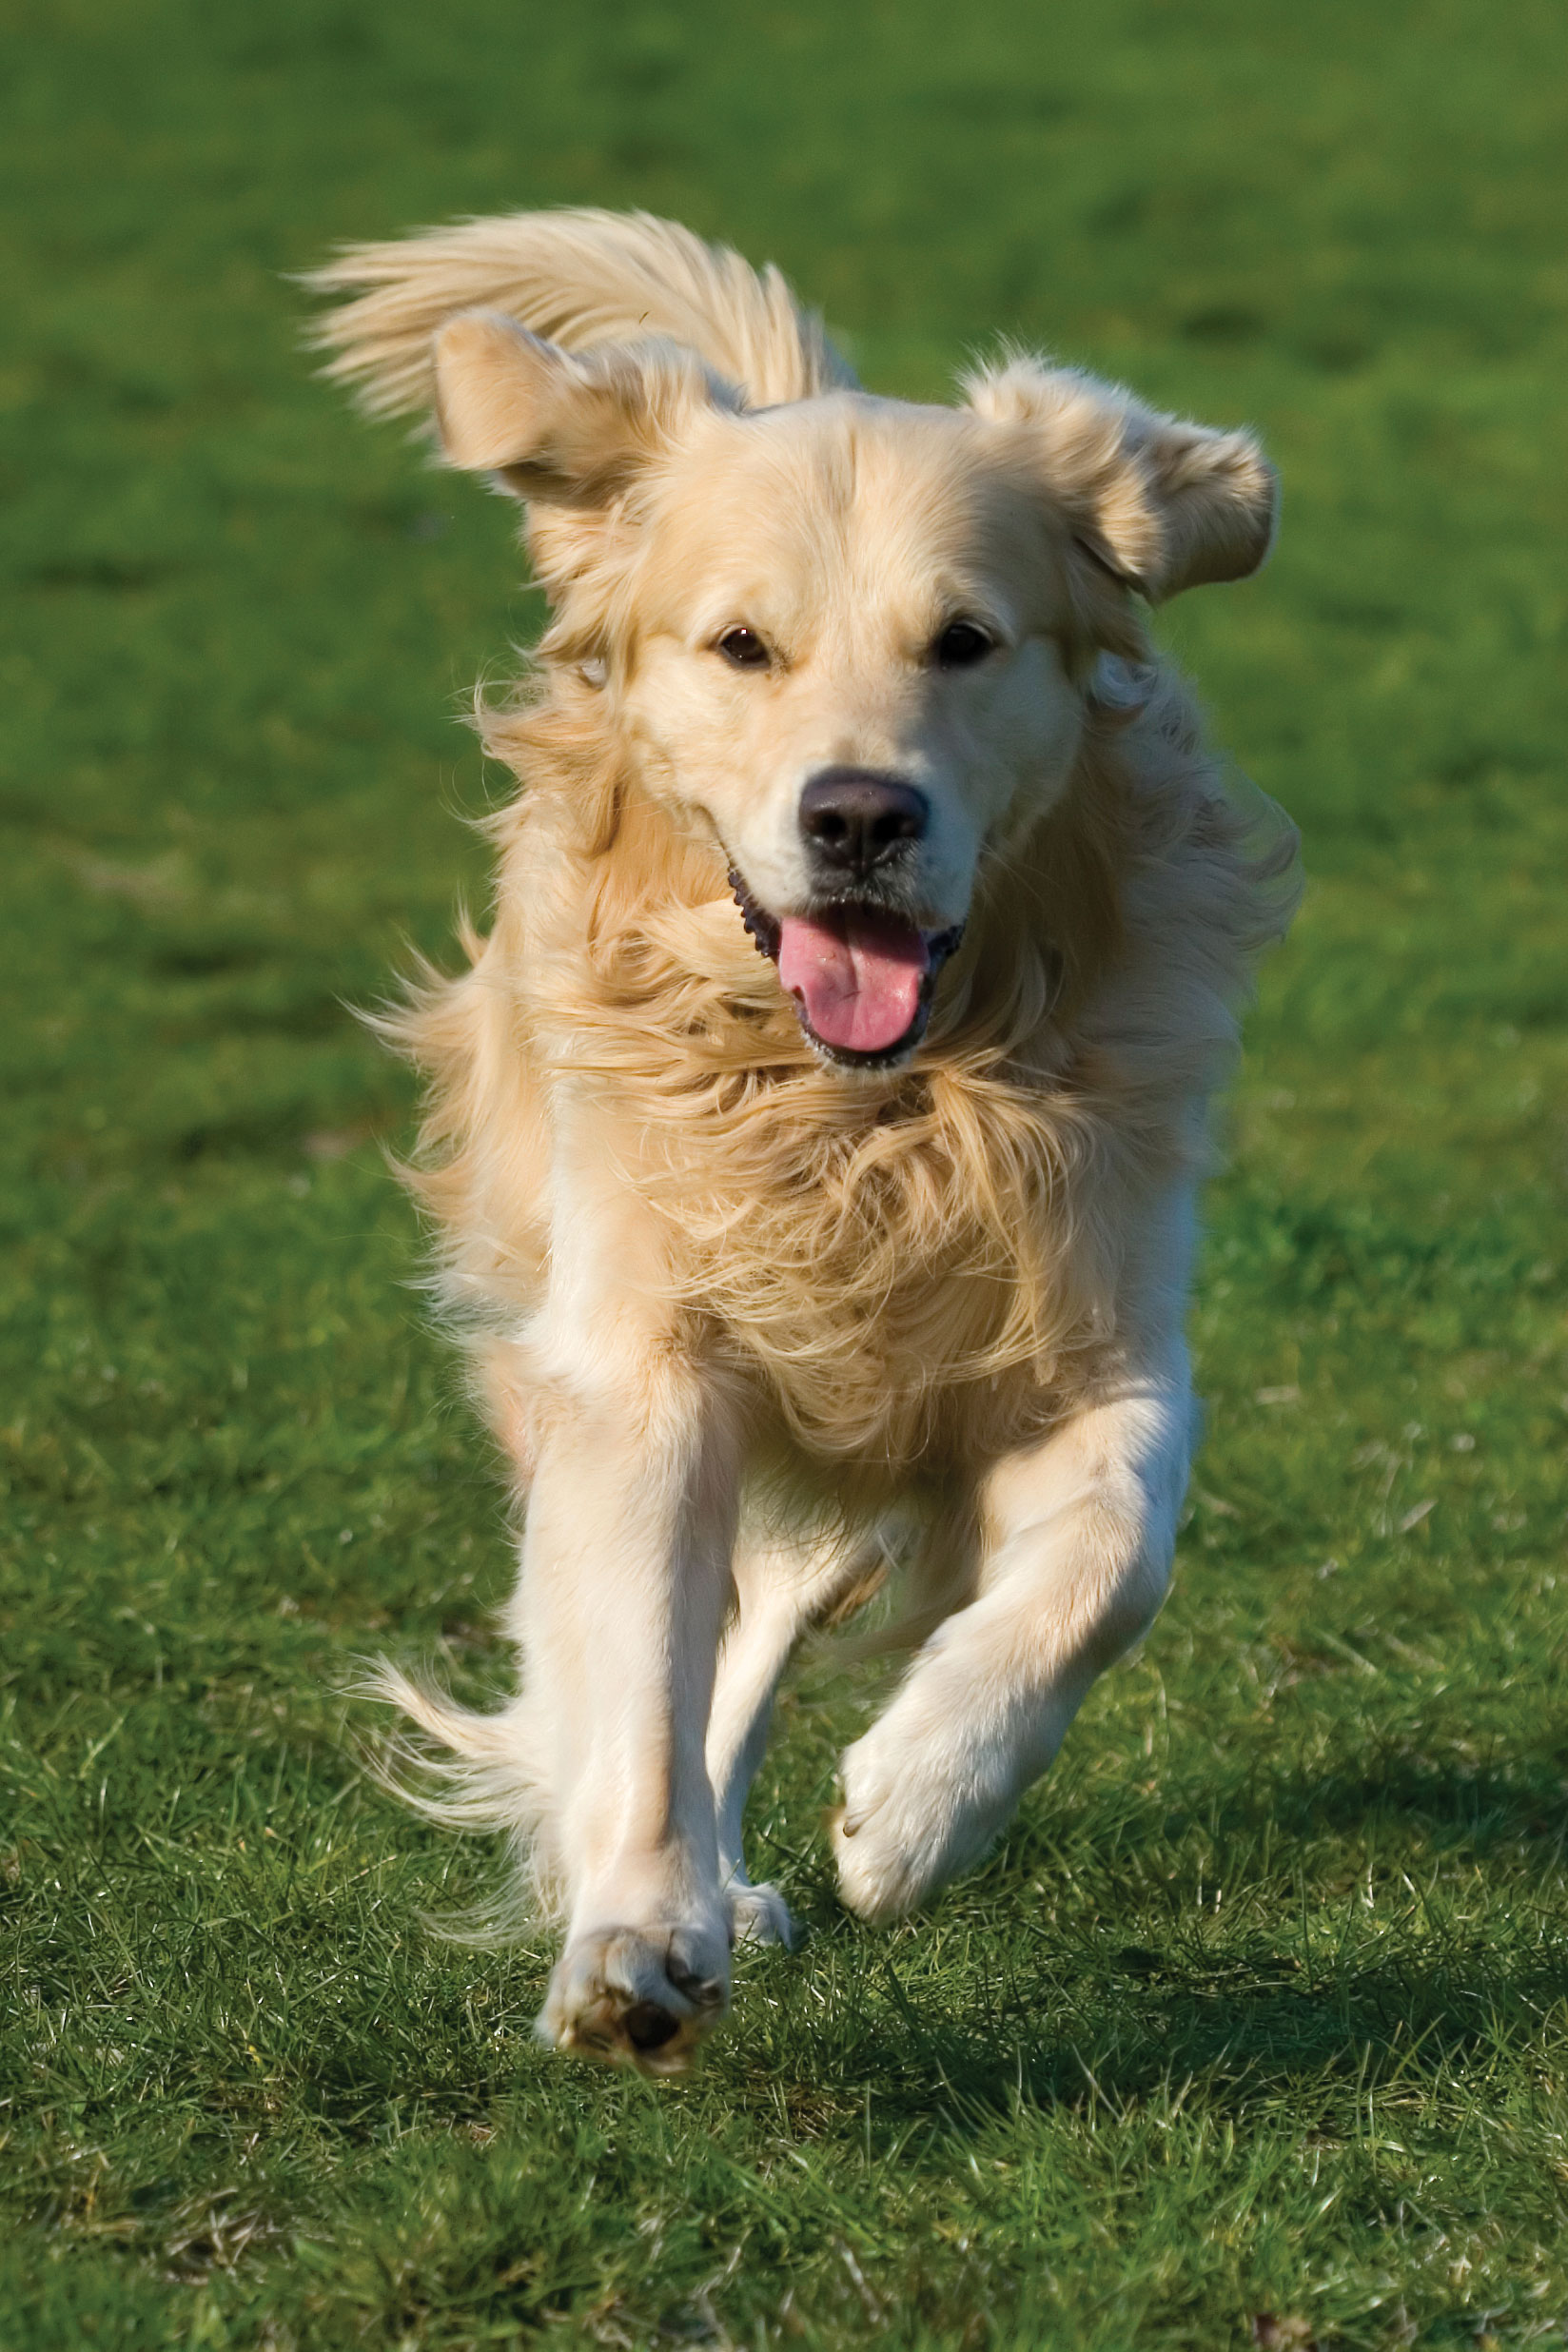 Camp Bow Wow Kemah: Take The Fitness Challenge